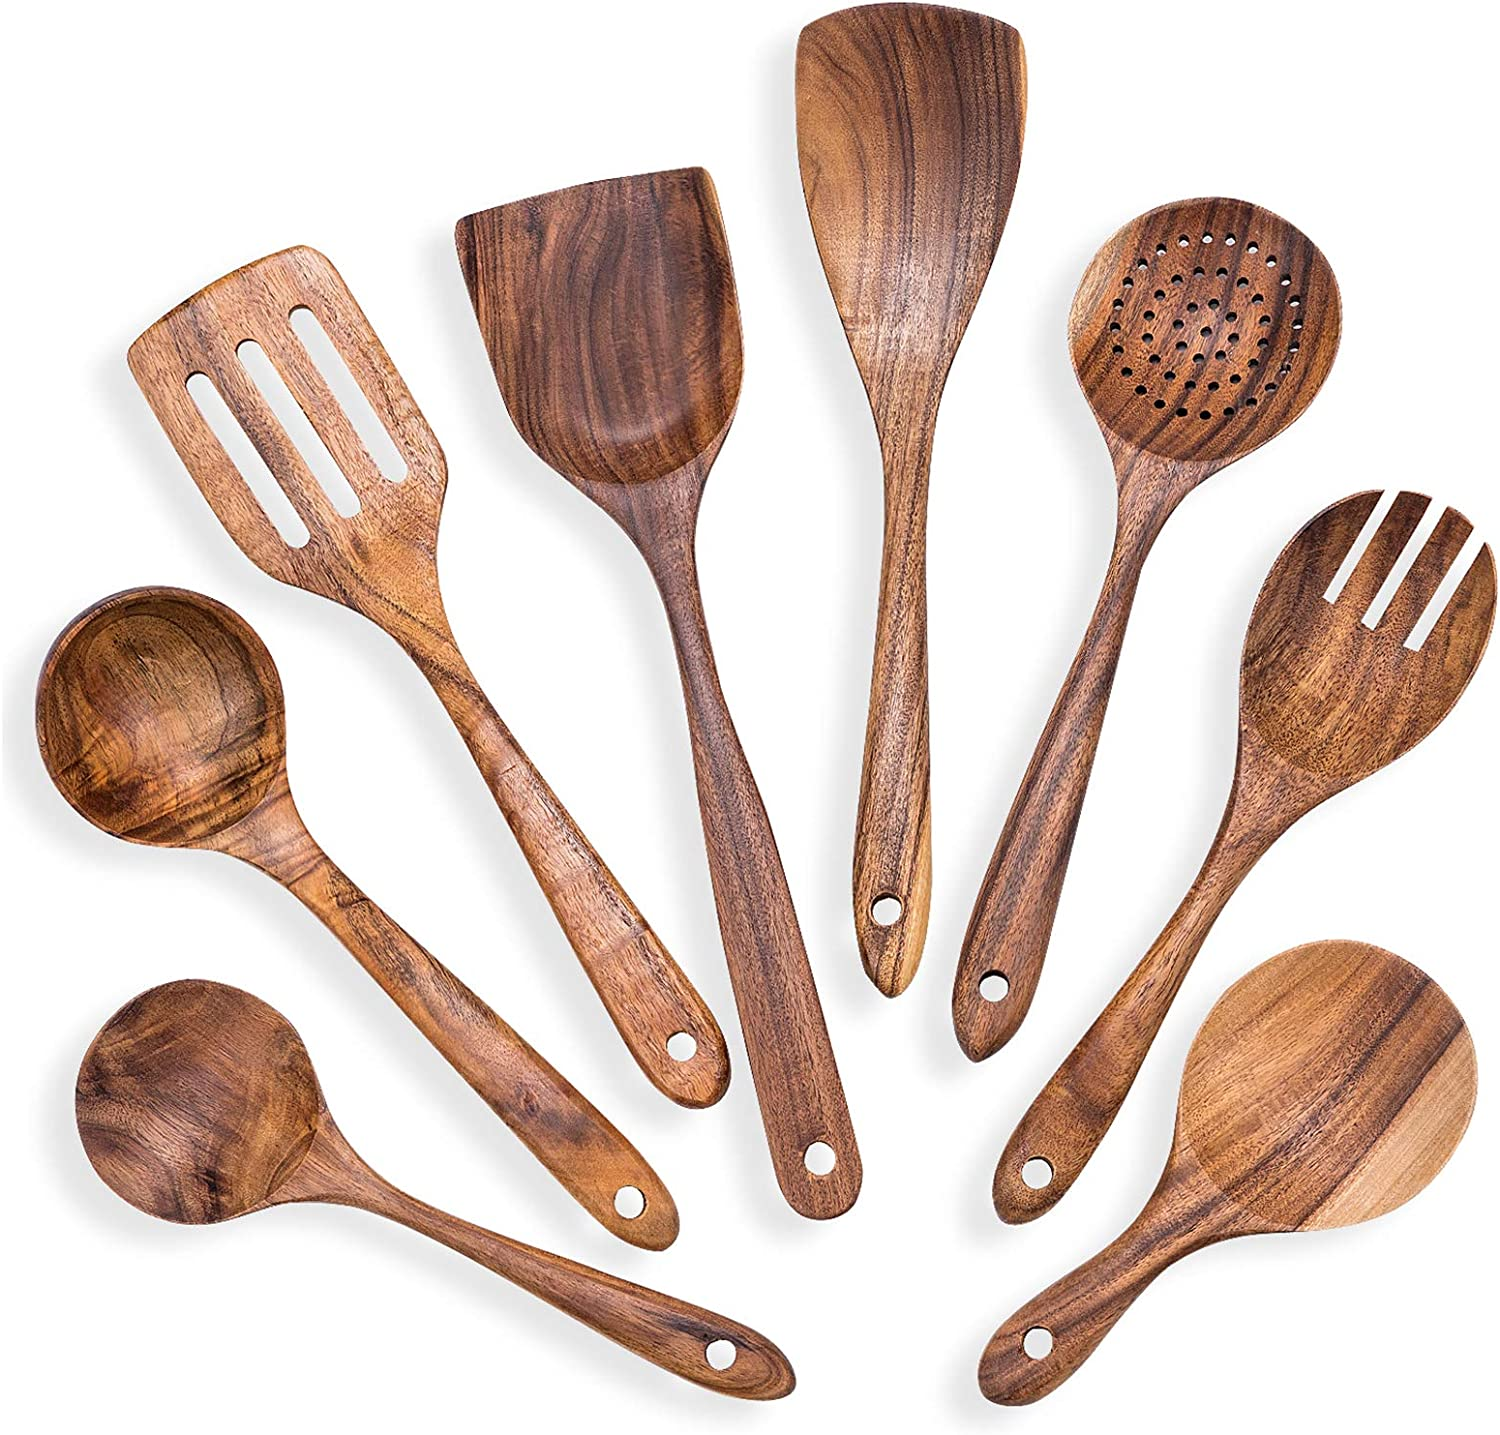 Wooden Spatula Shovel Non-stick Pan Rice Spoons Cooking Tools Cookware Gadget